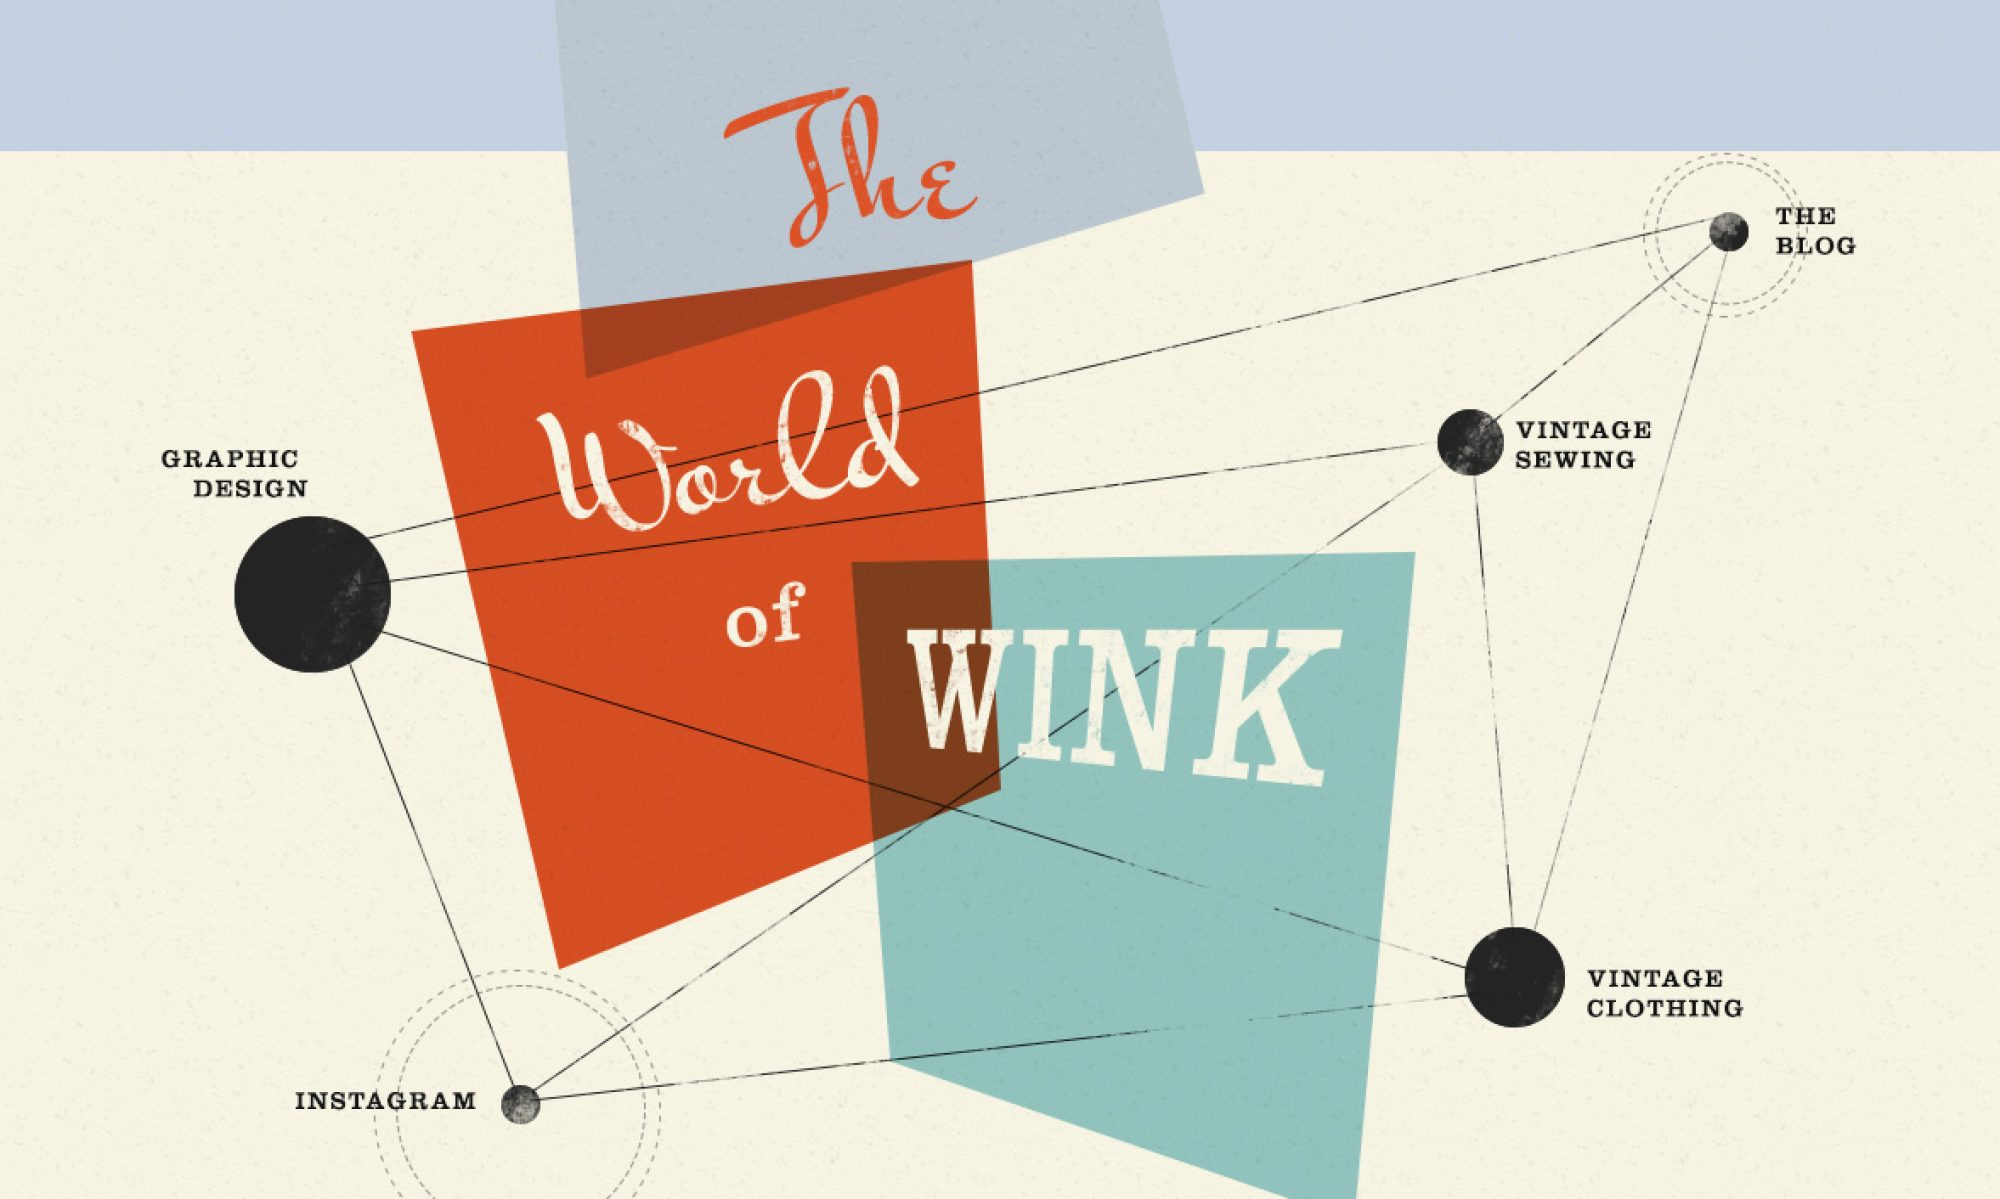 The World of Wink